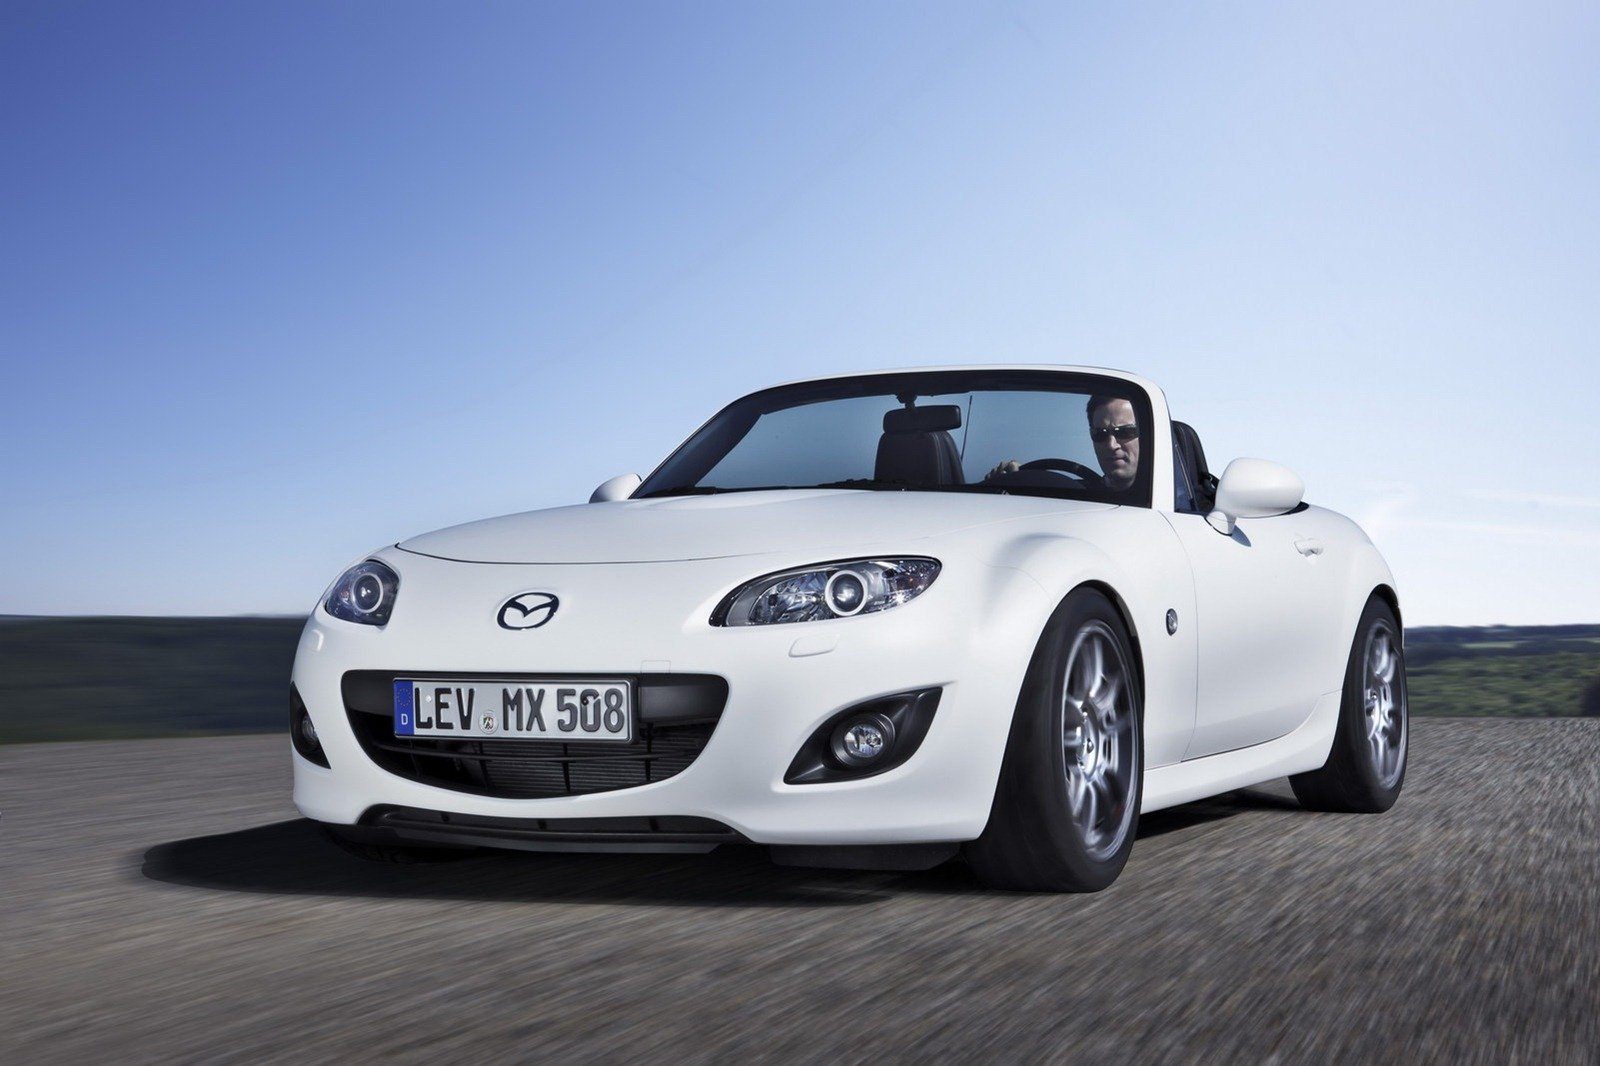 https://pictures.topspeed.com/IMG/crop/201206/2012-mazda-mx-5-yusho-con_1600x0w.jpg